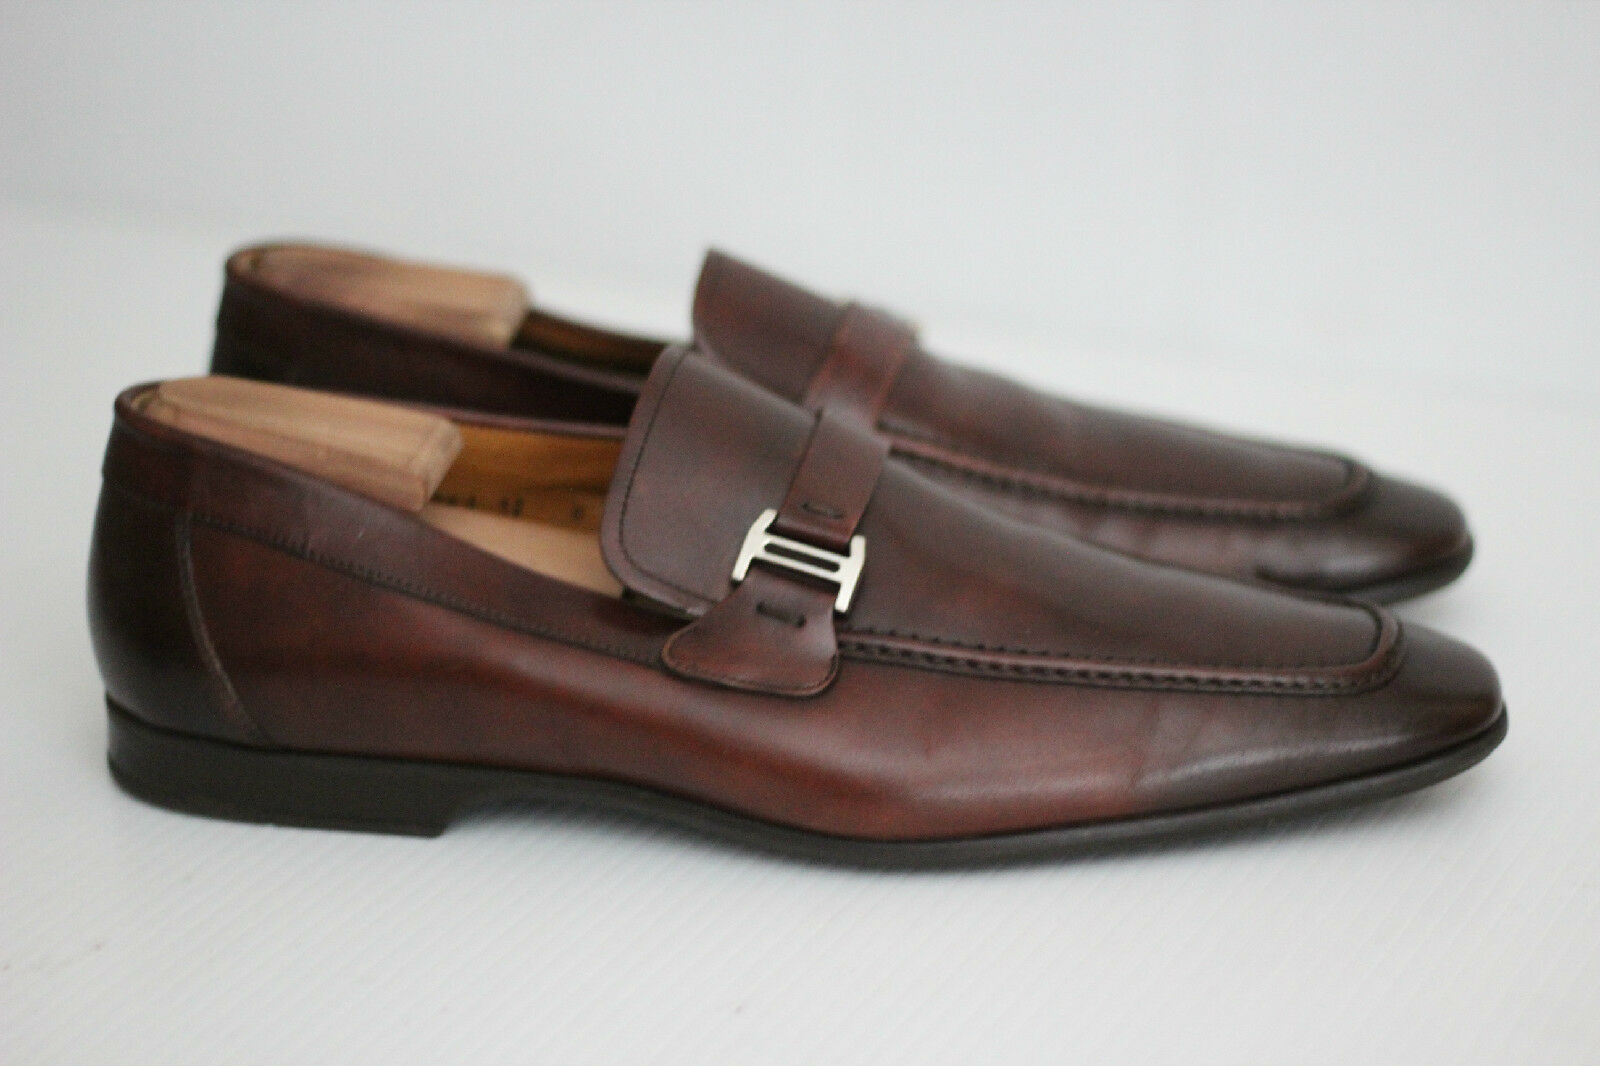 Magnanni 'Lino' Loafer shoes Slip On - Brown - Size 12 M - 15061 (T58)